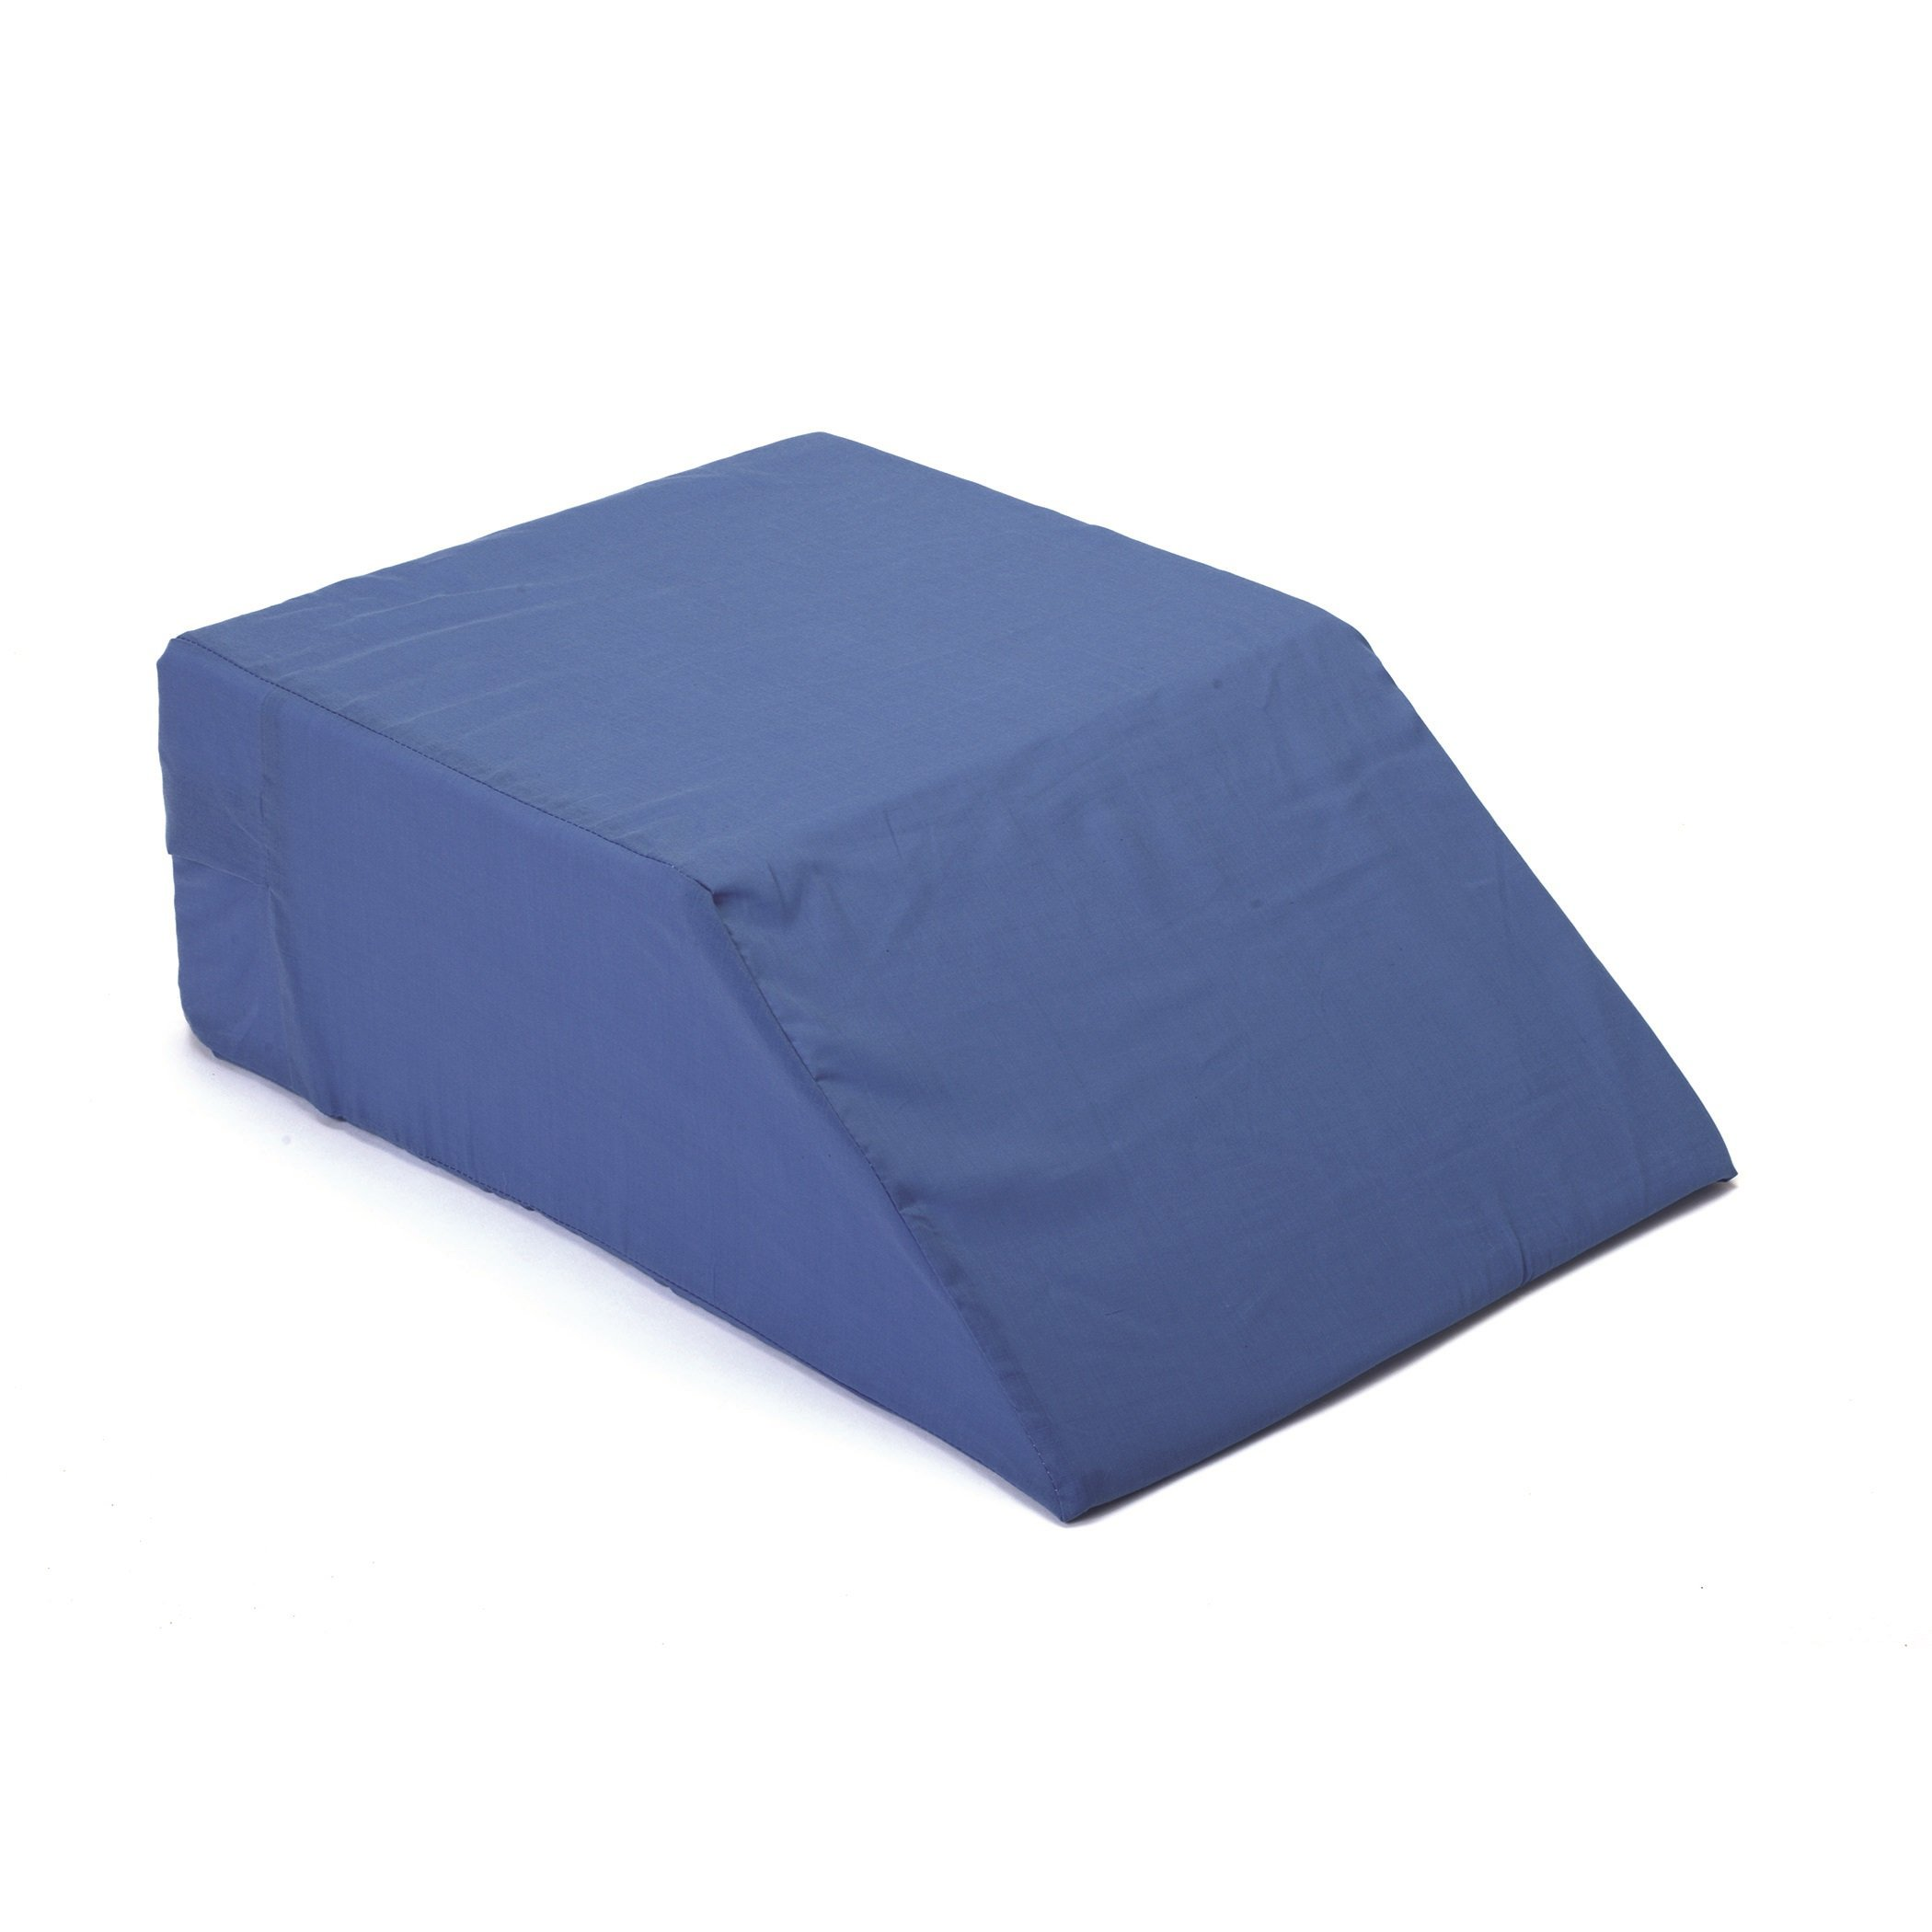 Hermell Zero Gravity Elevating Leg Rest Pillow, Post-Surgery, Leg Pain, Back Injury, Sciatica Pain Relief, Removable Cover - Blue